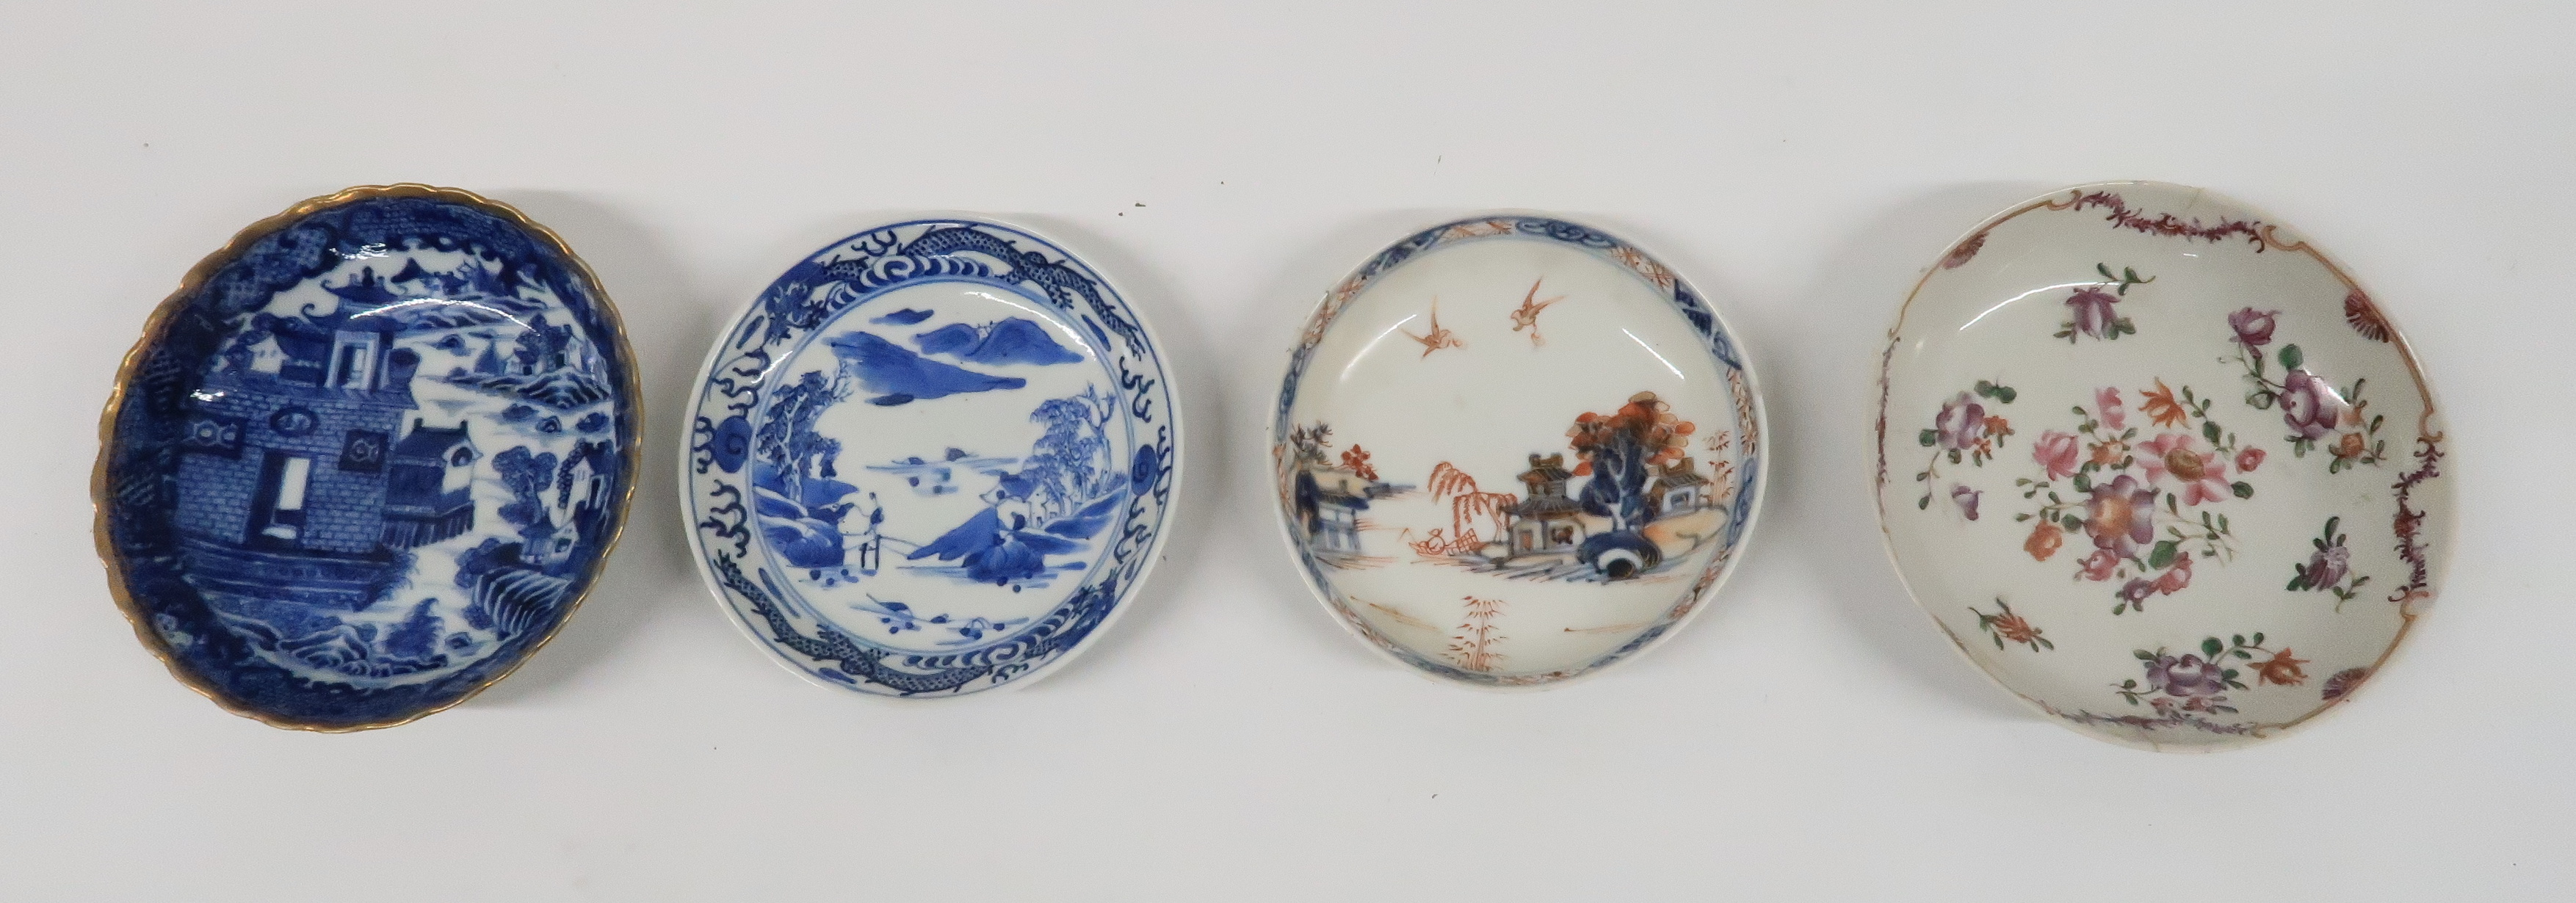 A COLLECTION OF CHINESE EXPORT TEAWARES and others including famille rose, Chien Lung, blue and - Image 15 of 22